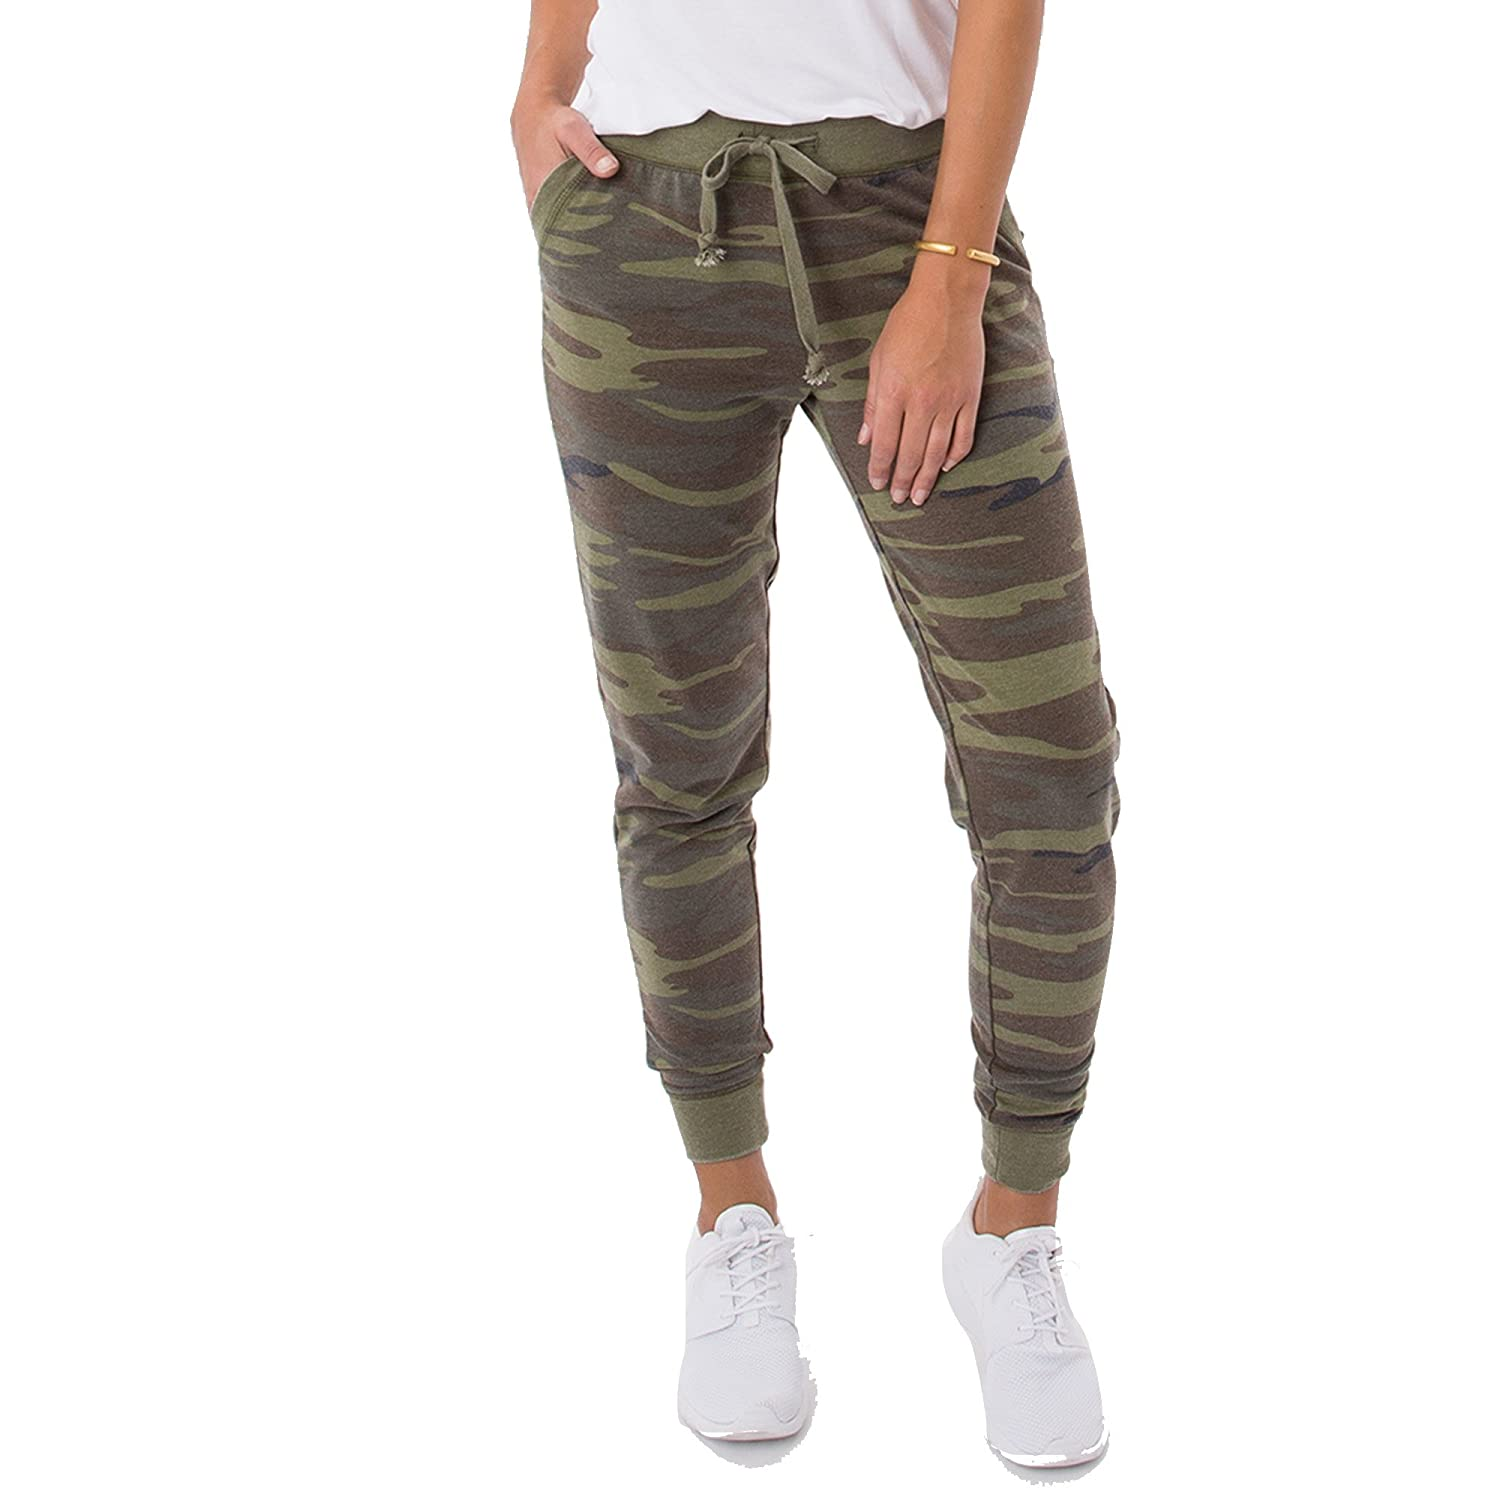 Z Supply Women's Women's The Camo Pant Jogger by Z Supply